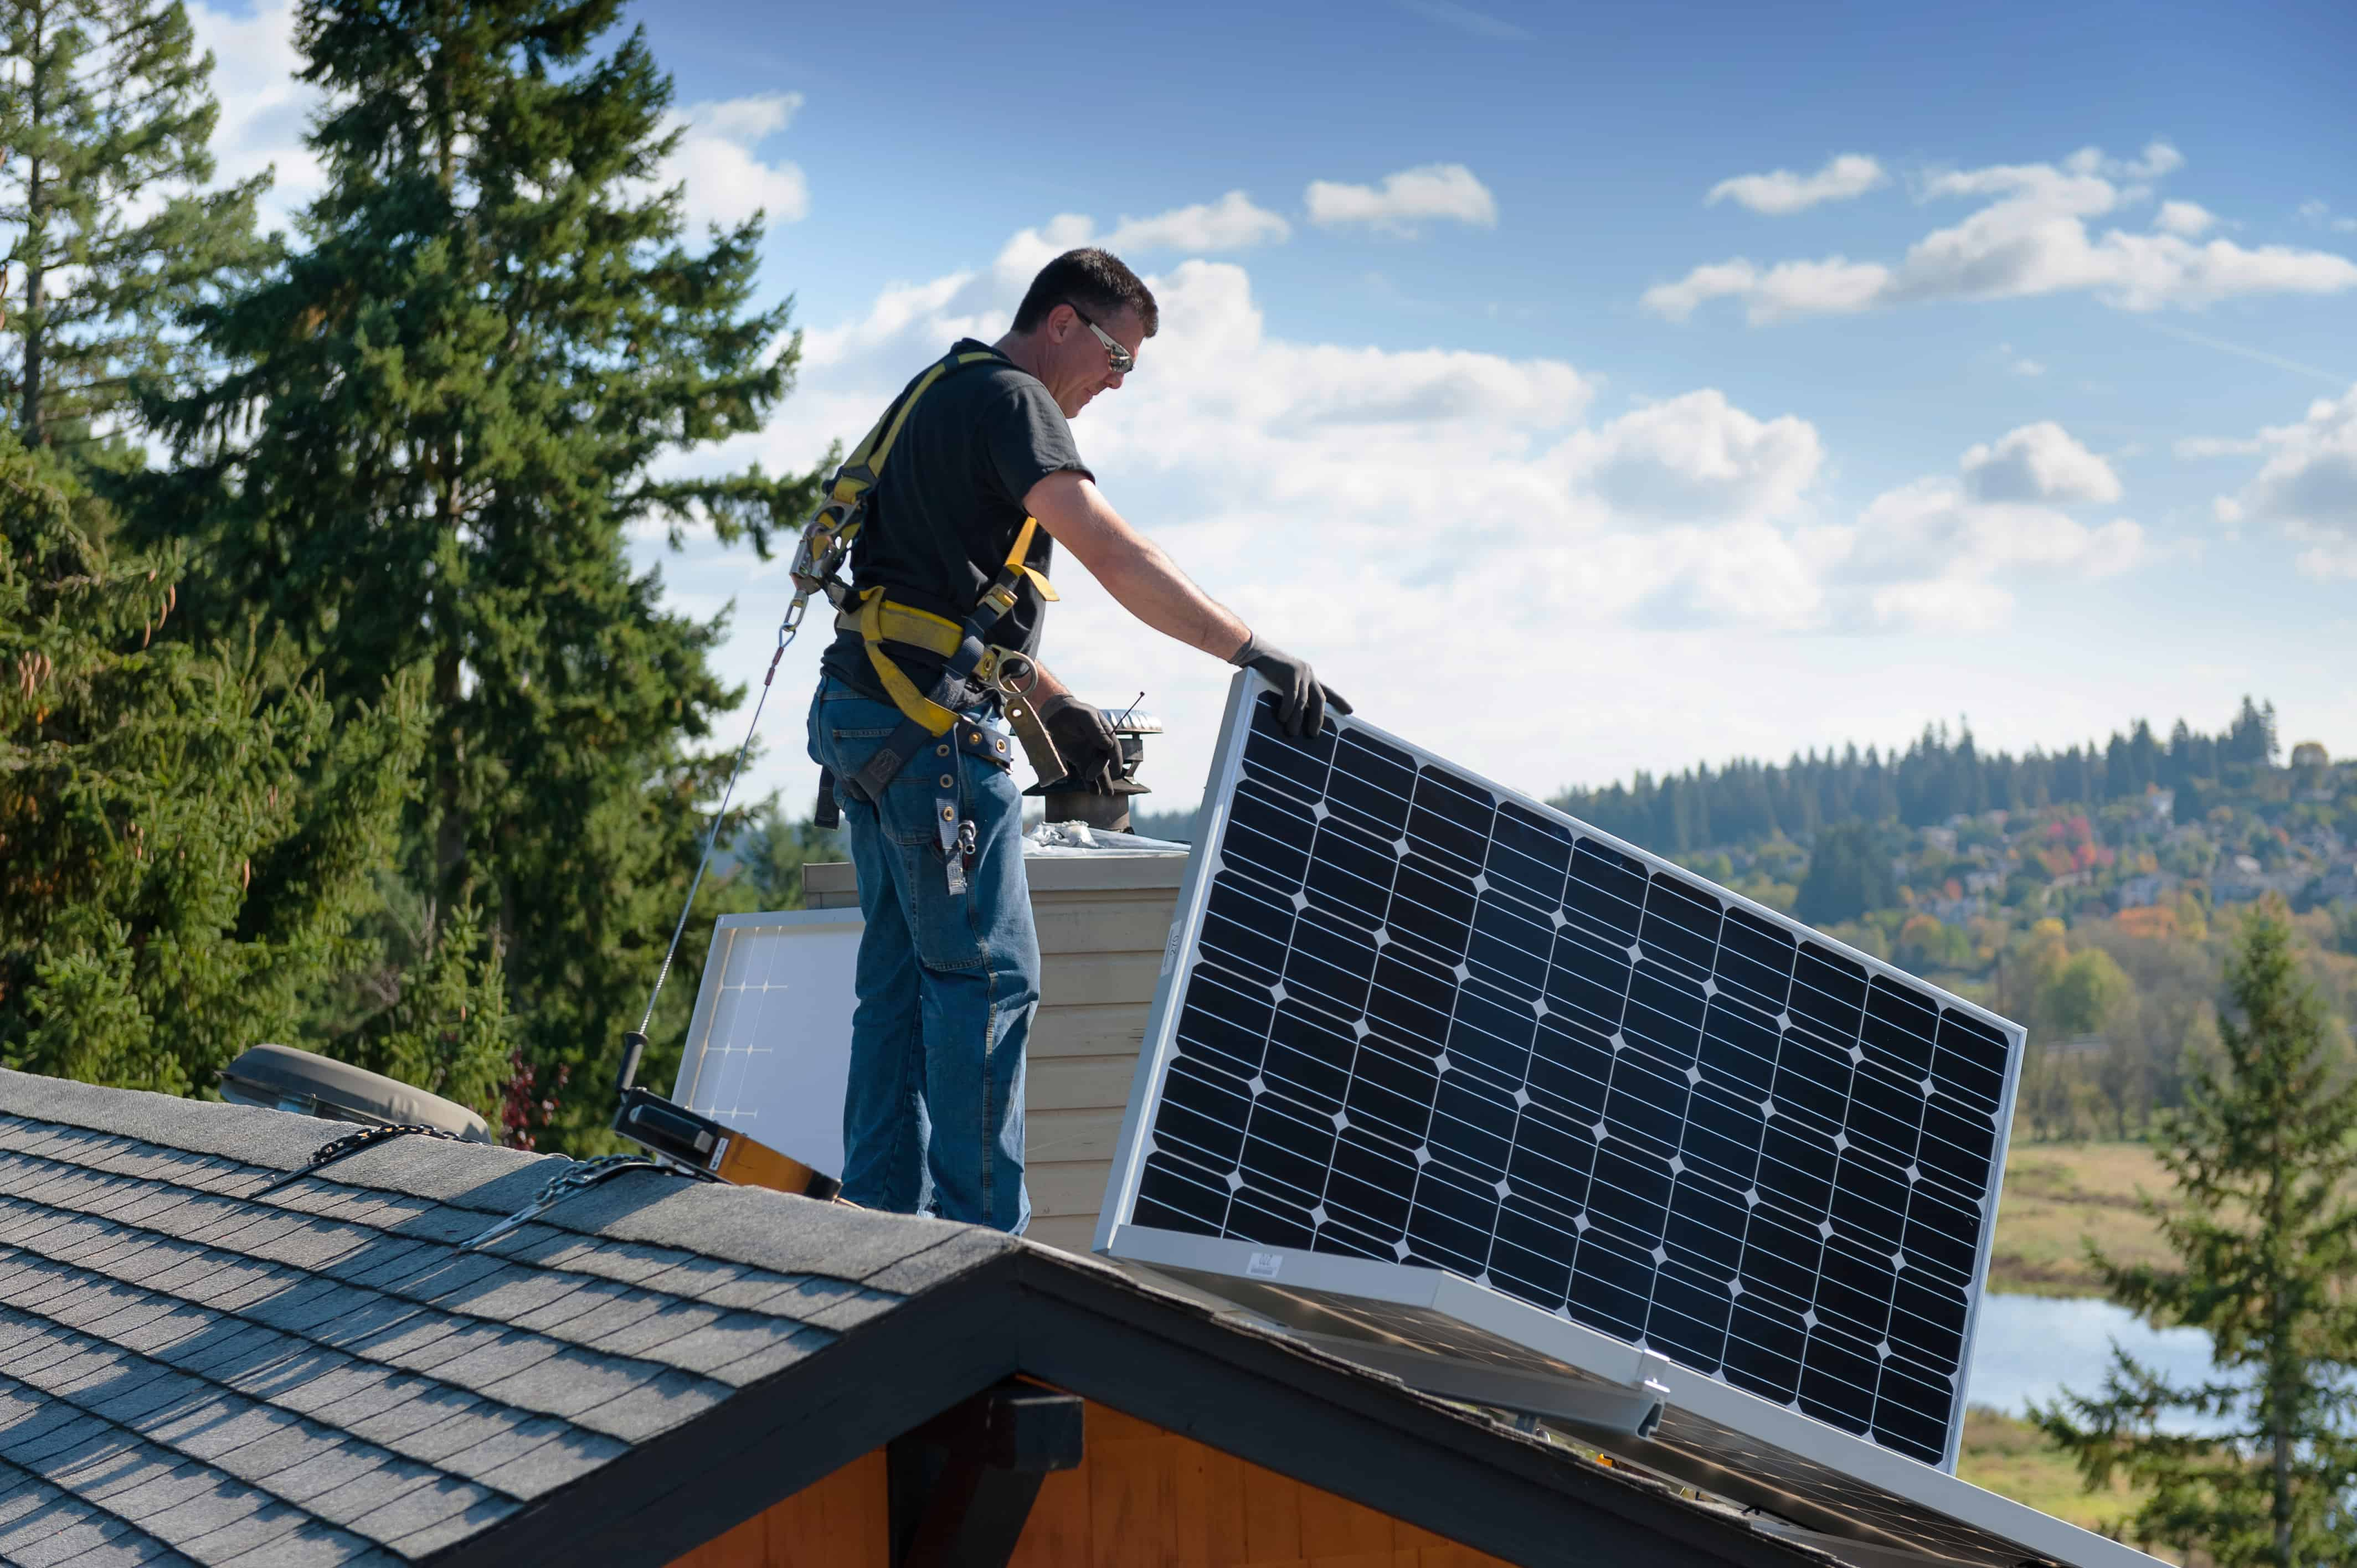 Neil Kelly installs solar panels in Portland, Bend, Seattle, and Eugene